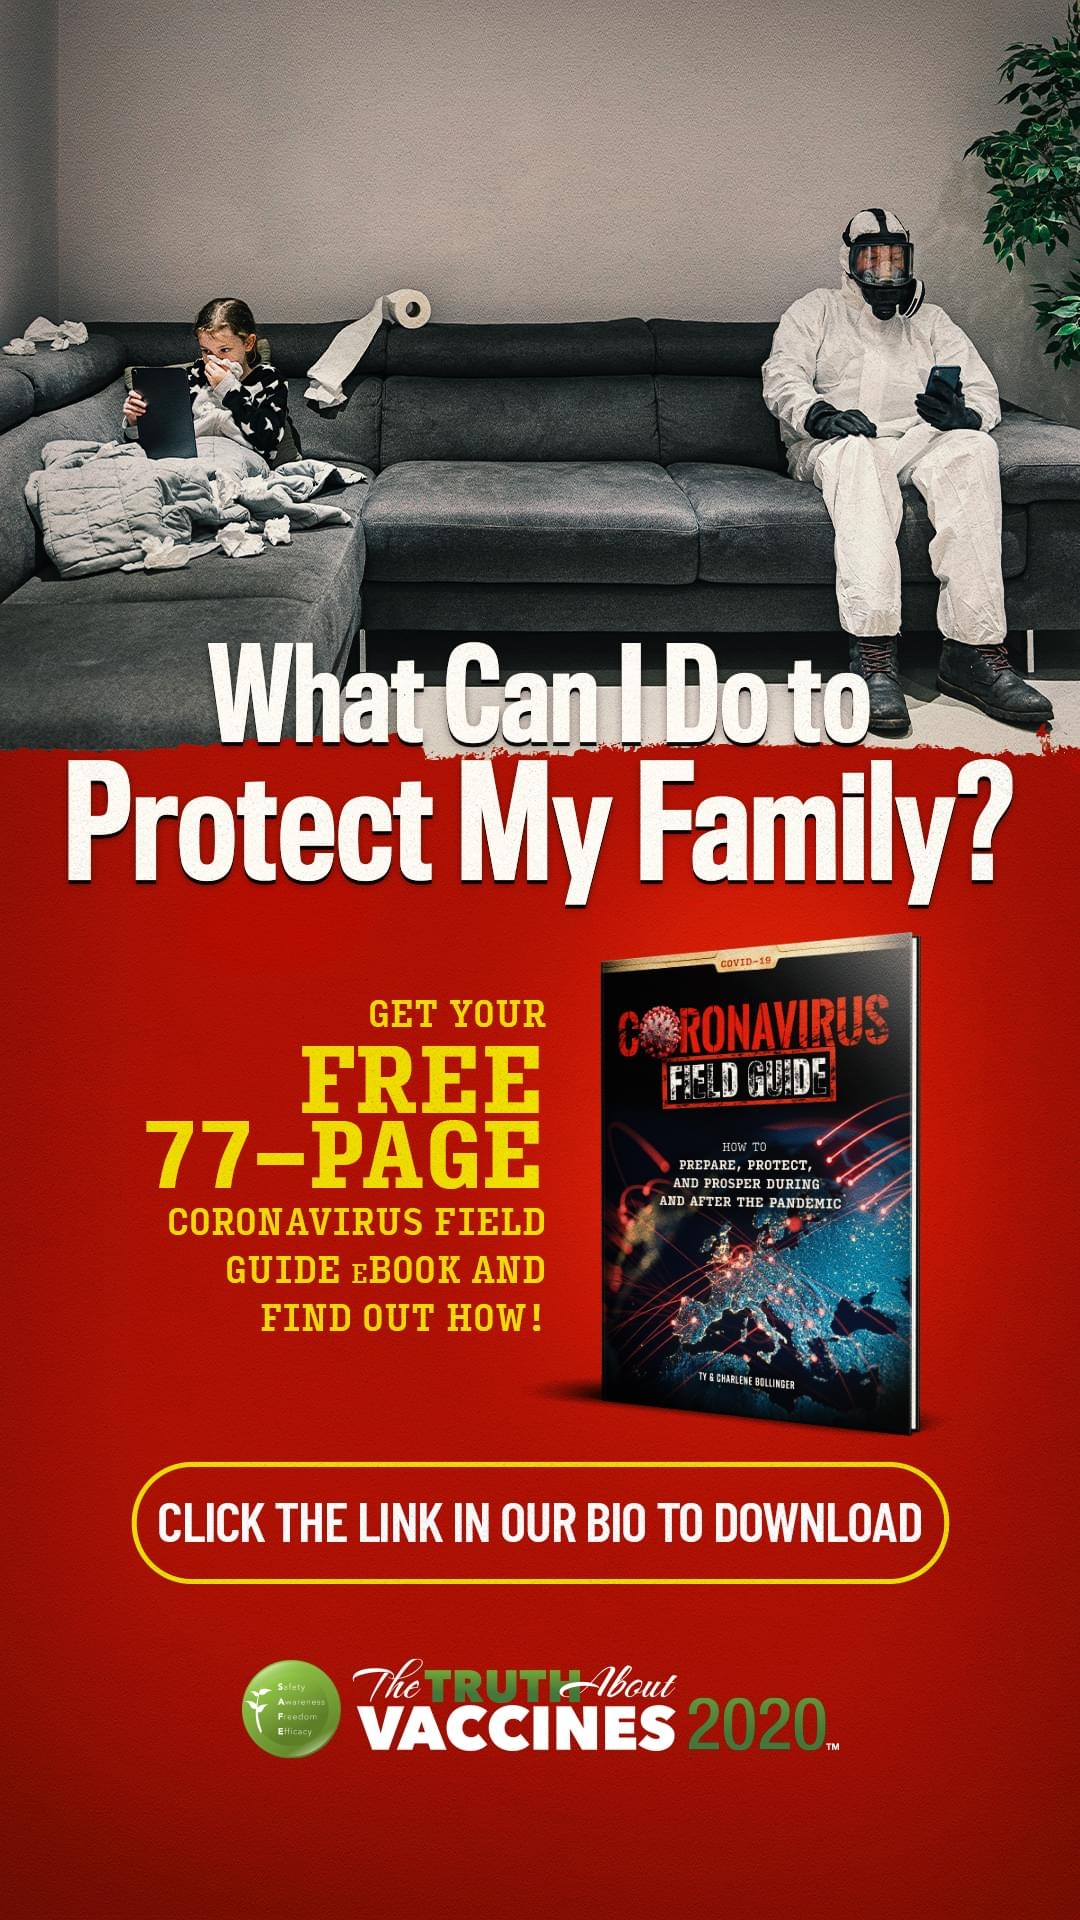 TTAV-eBook-Coronavirus_Field_Guide-Protect_Family-IG-1080x1920-min